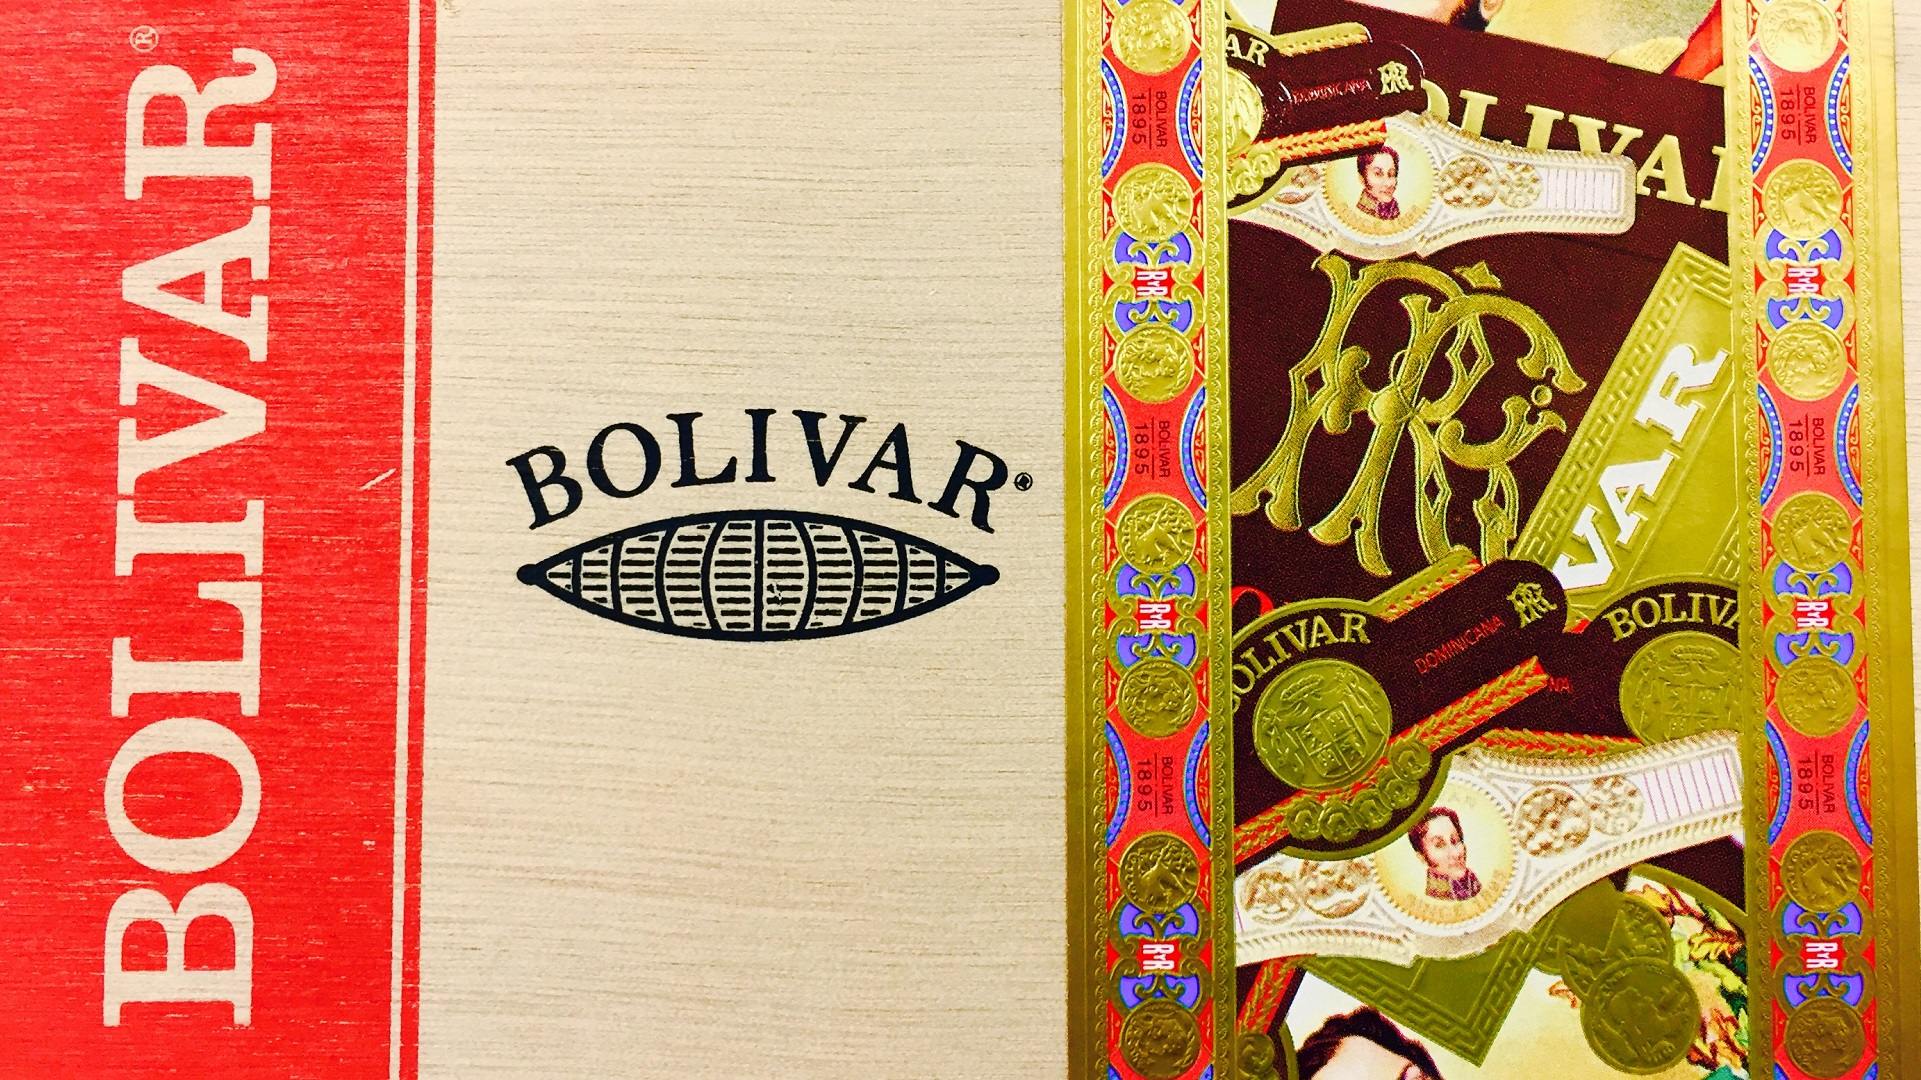 bolivar heritage 652 cigars box top image